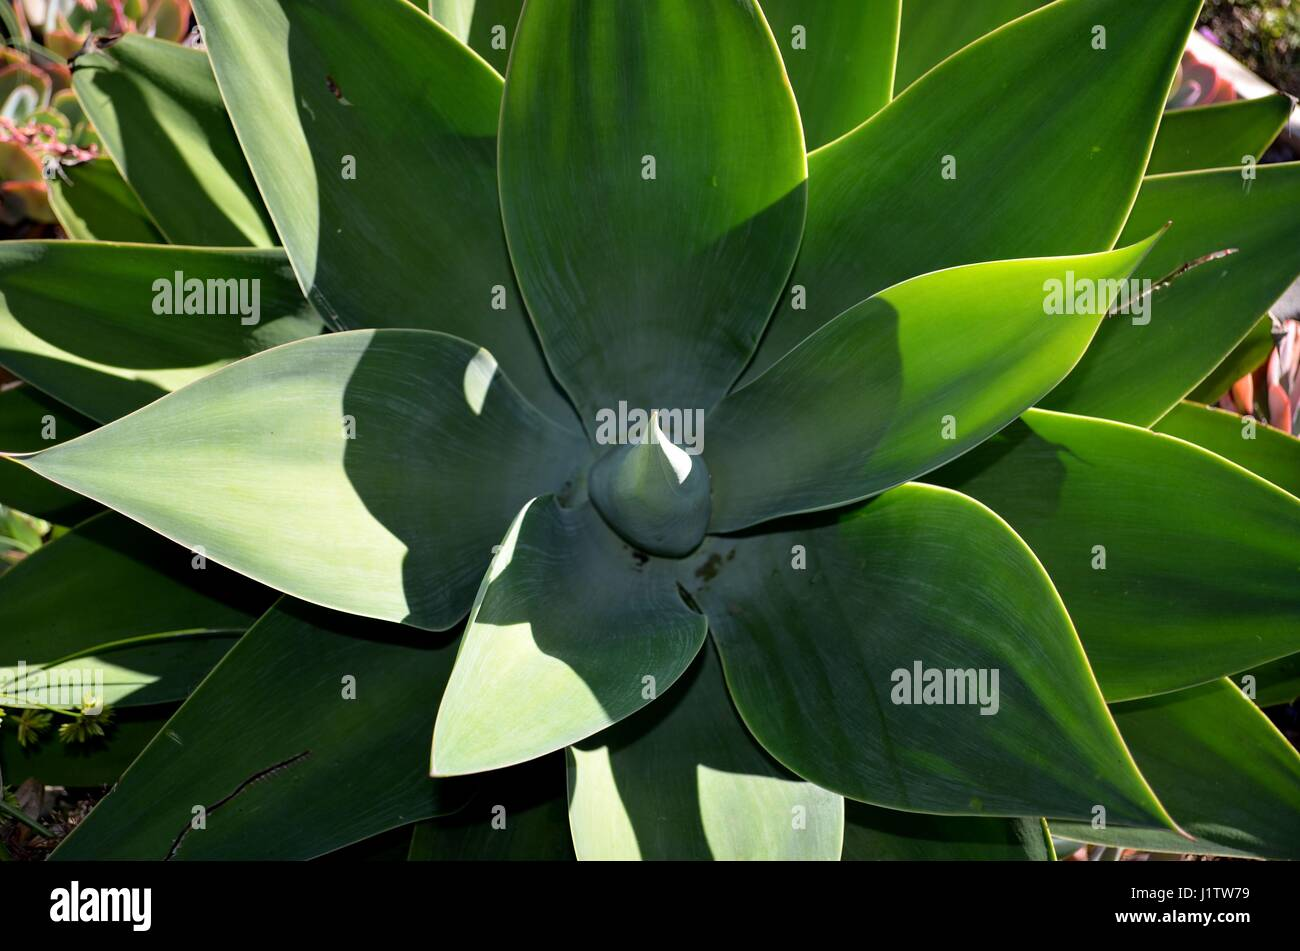 Agave plant in detail rosette of leaves - Stock Image